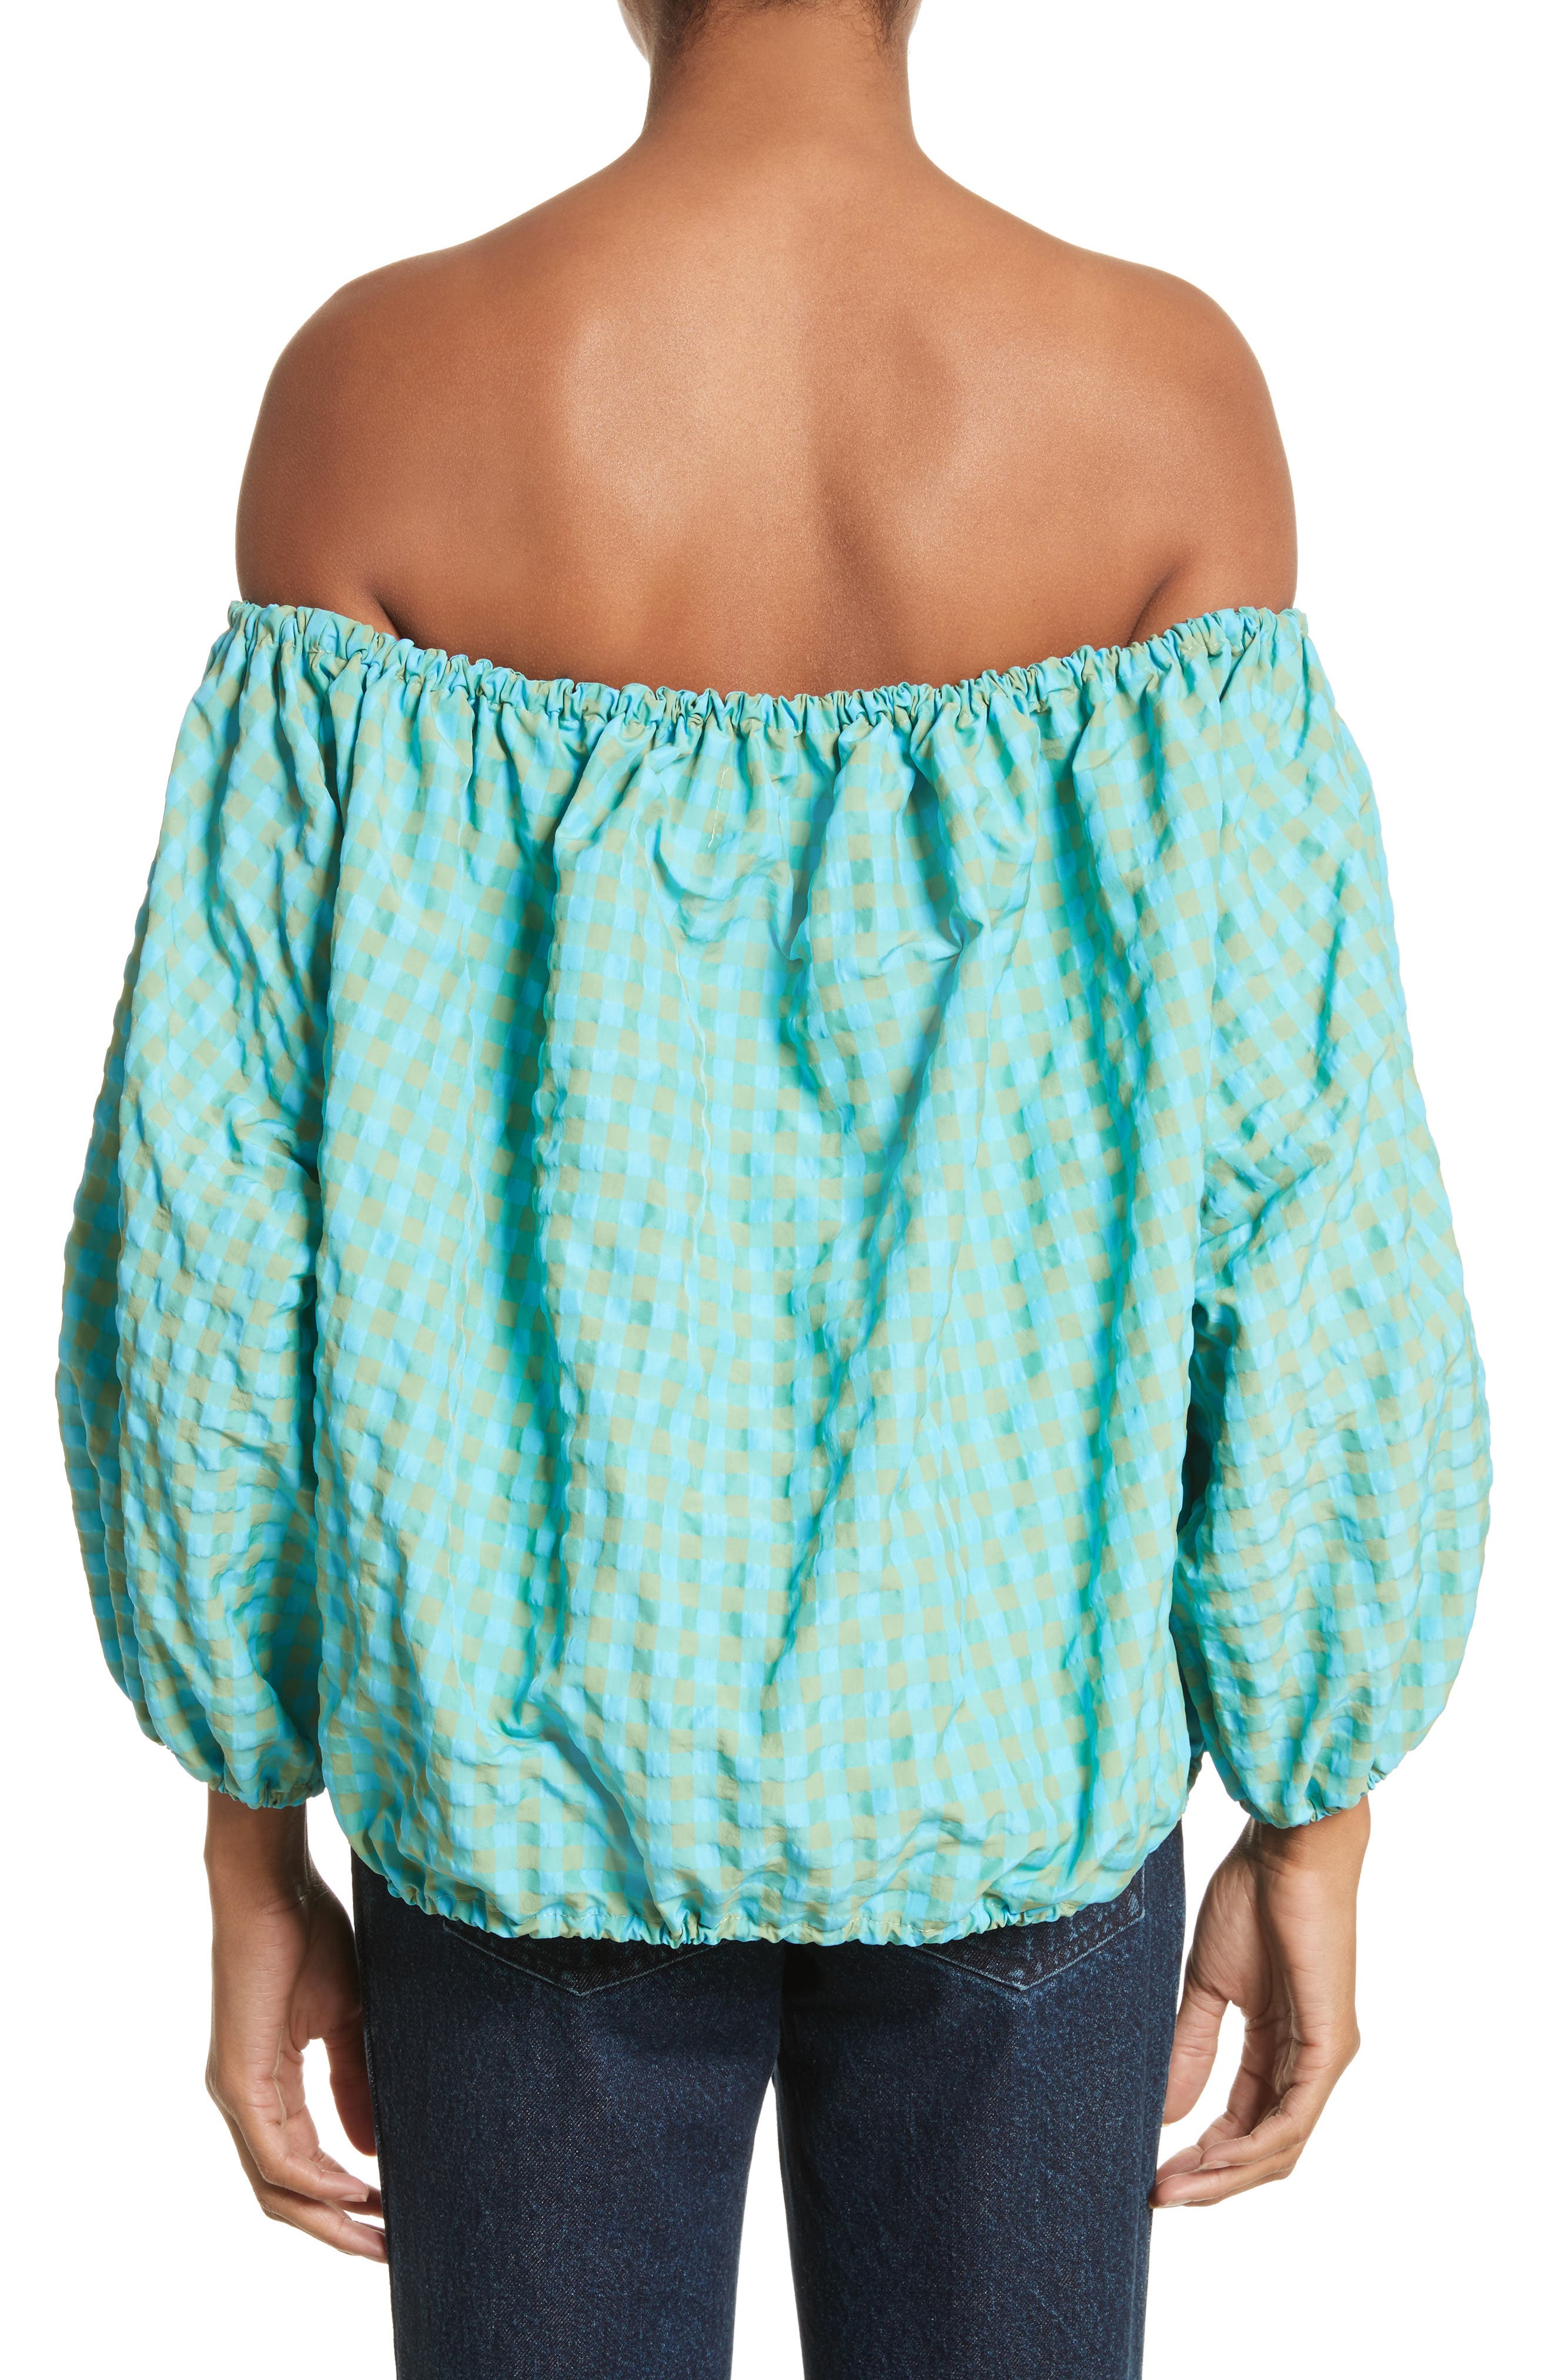 Marques'Almeida Off the Shoulder Gingham Top,                             Alternate thumbnail 2, color,                             440